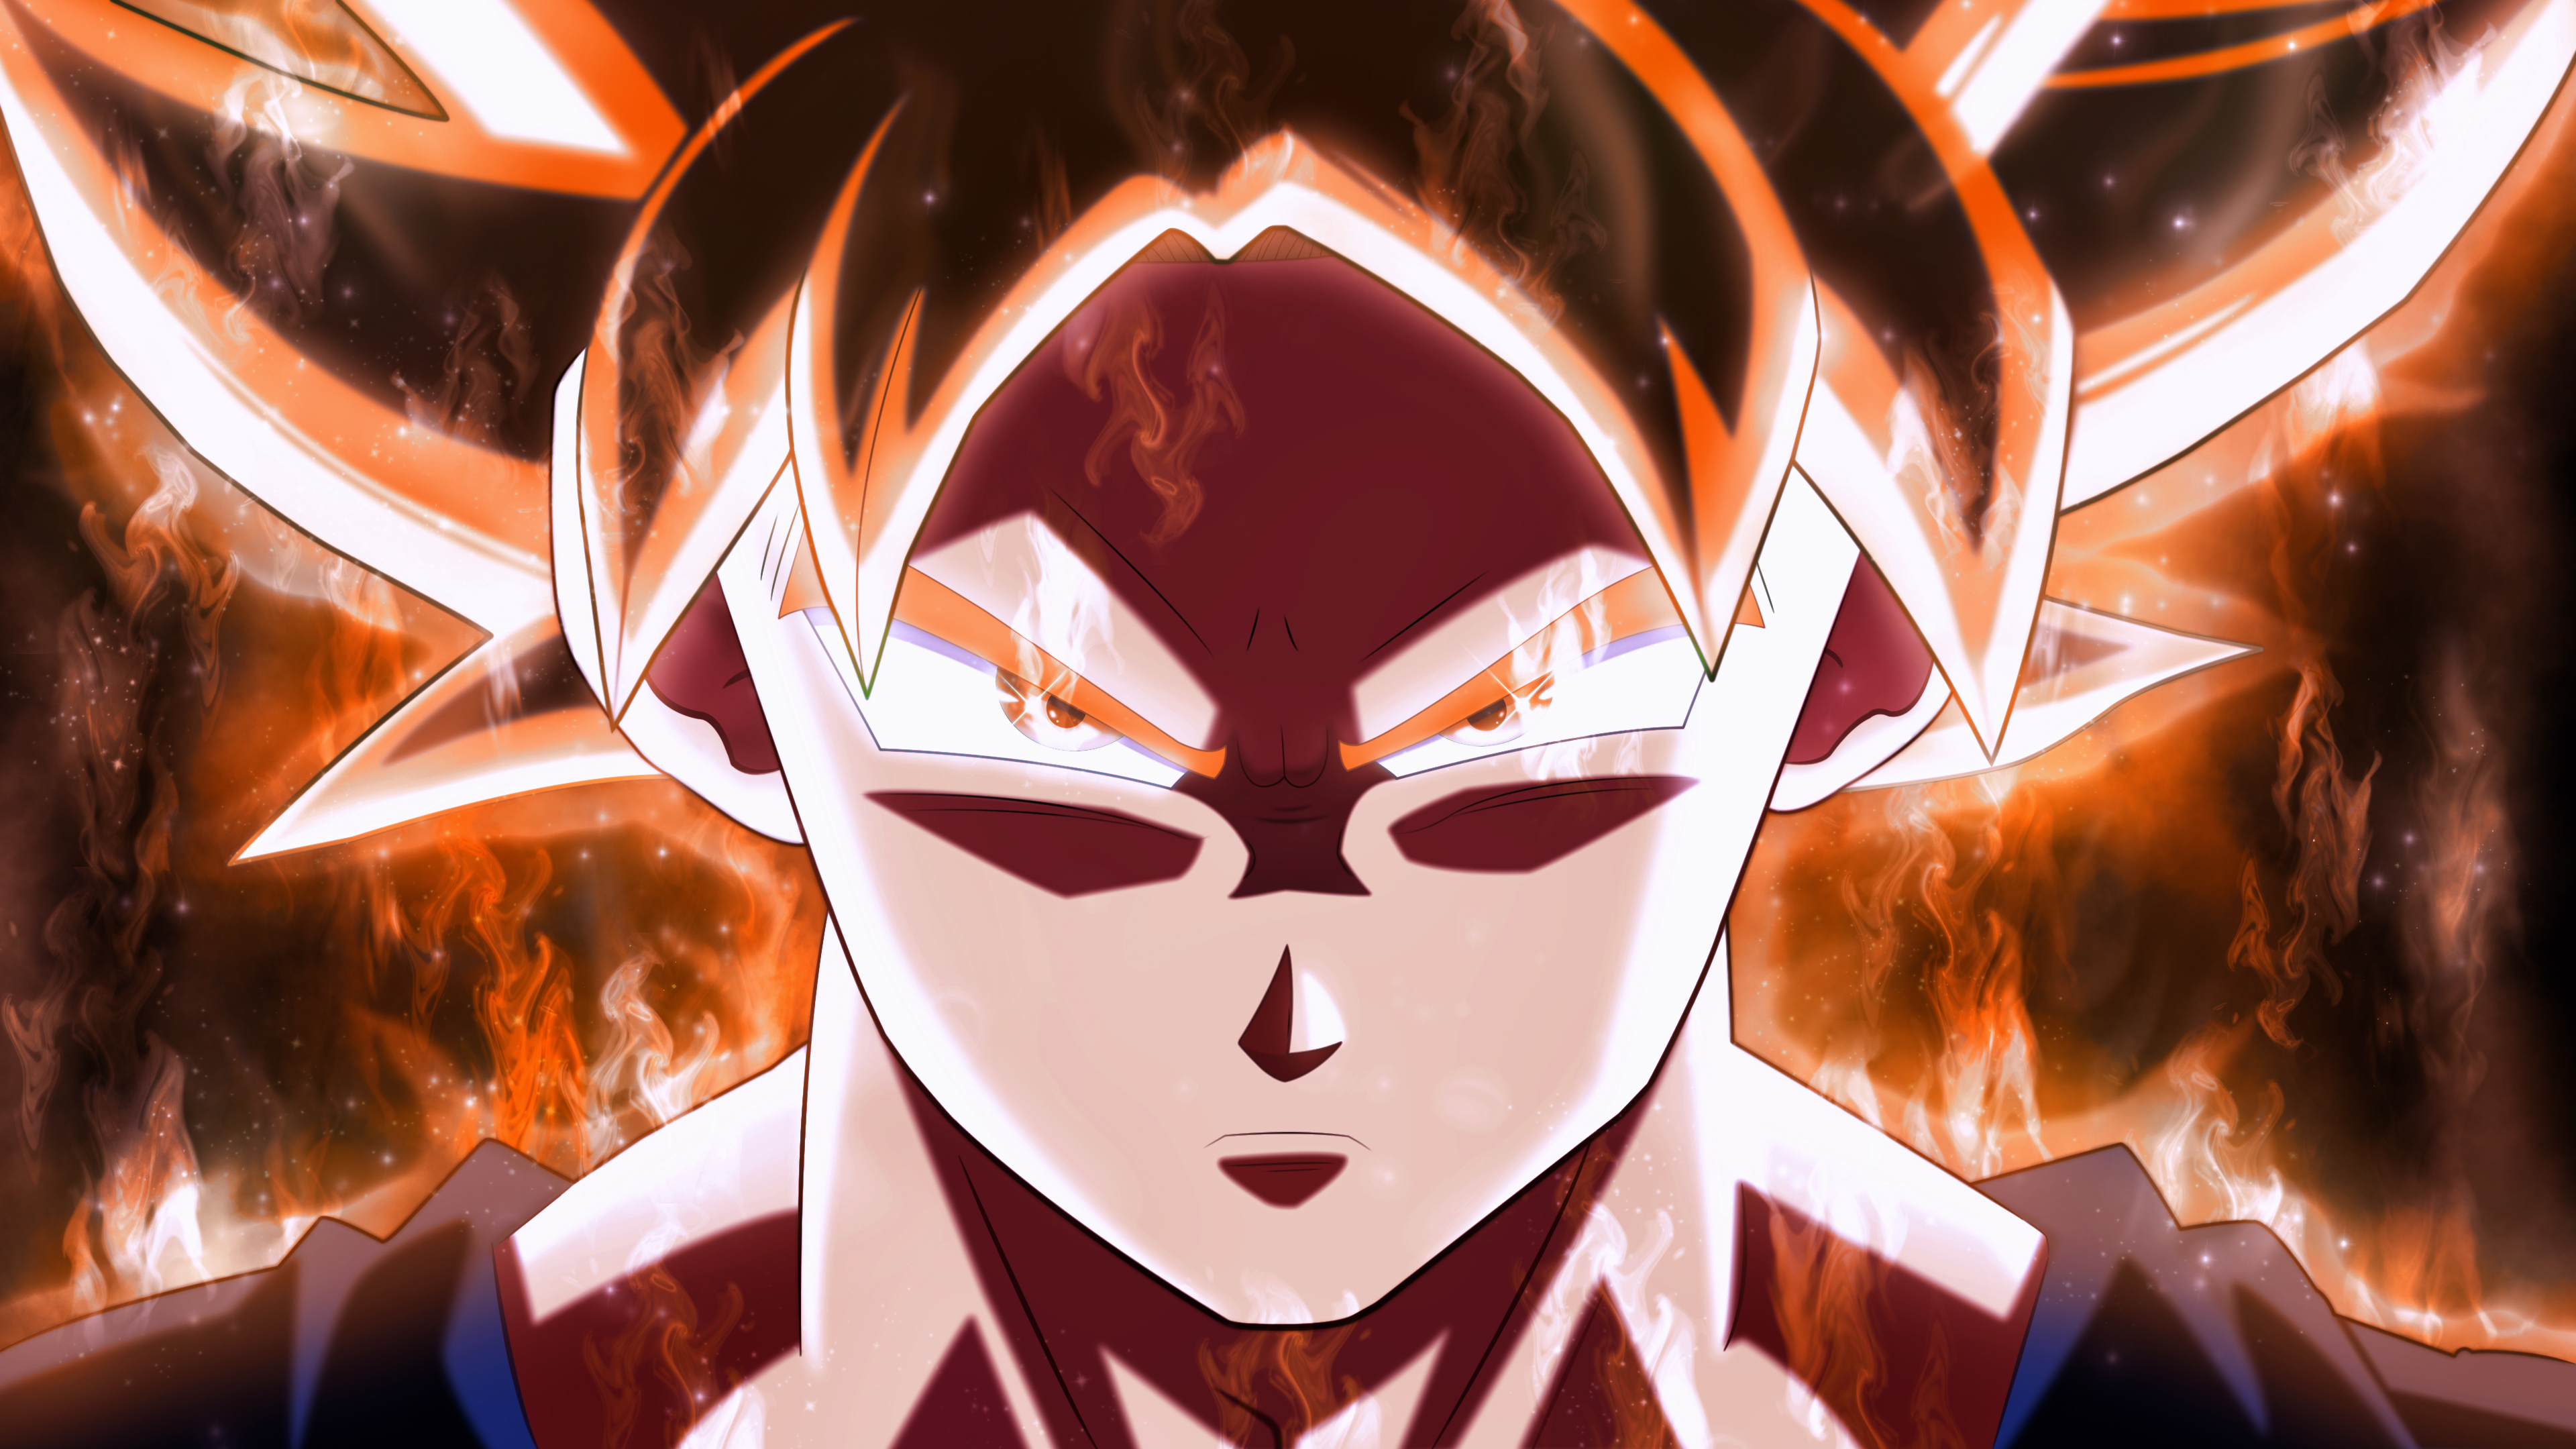 son-goku-dragon-ball-super-saiyan-4k-k3.jpg